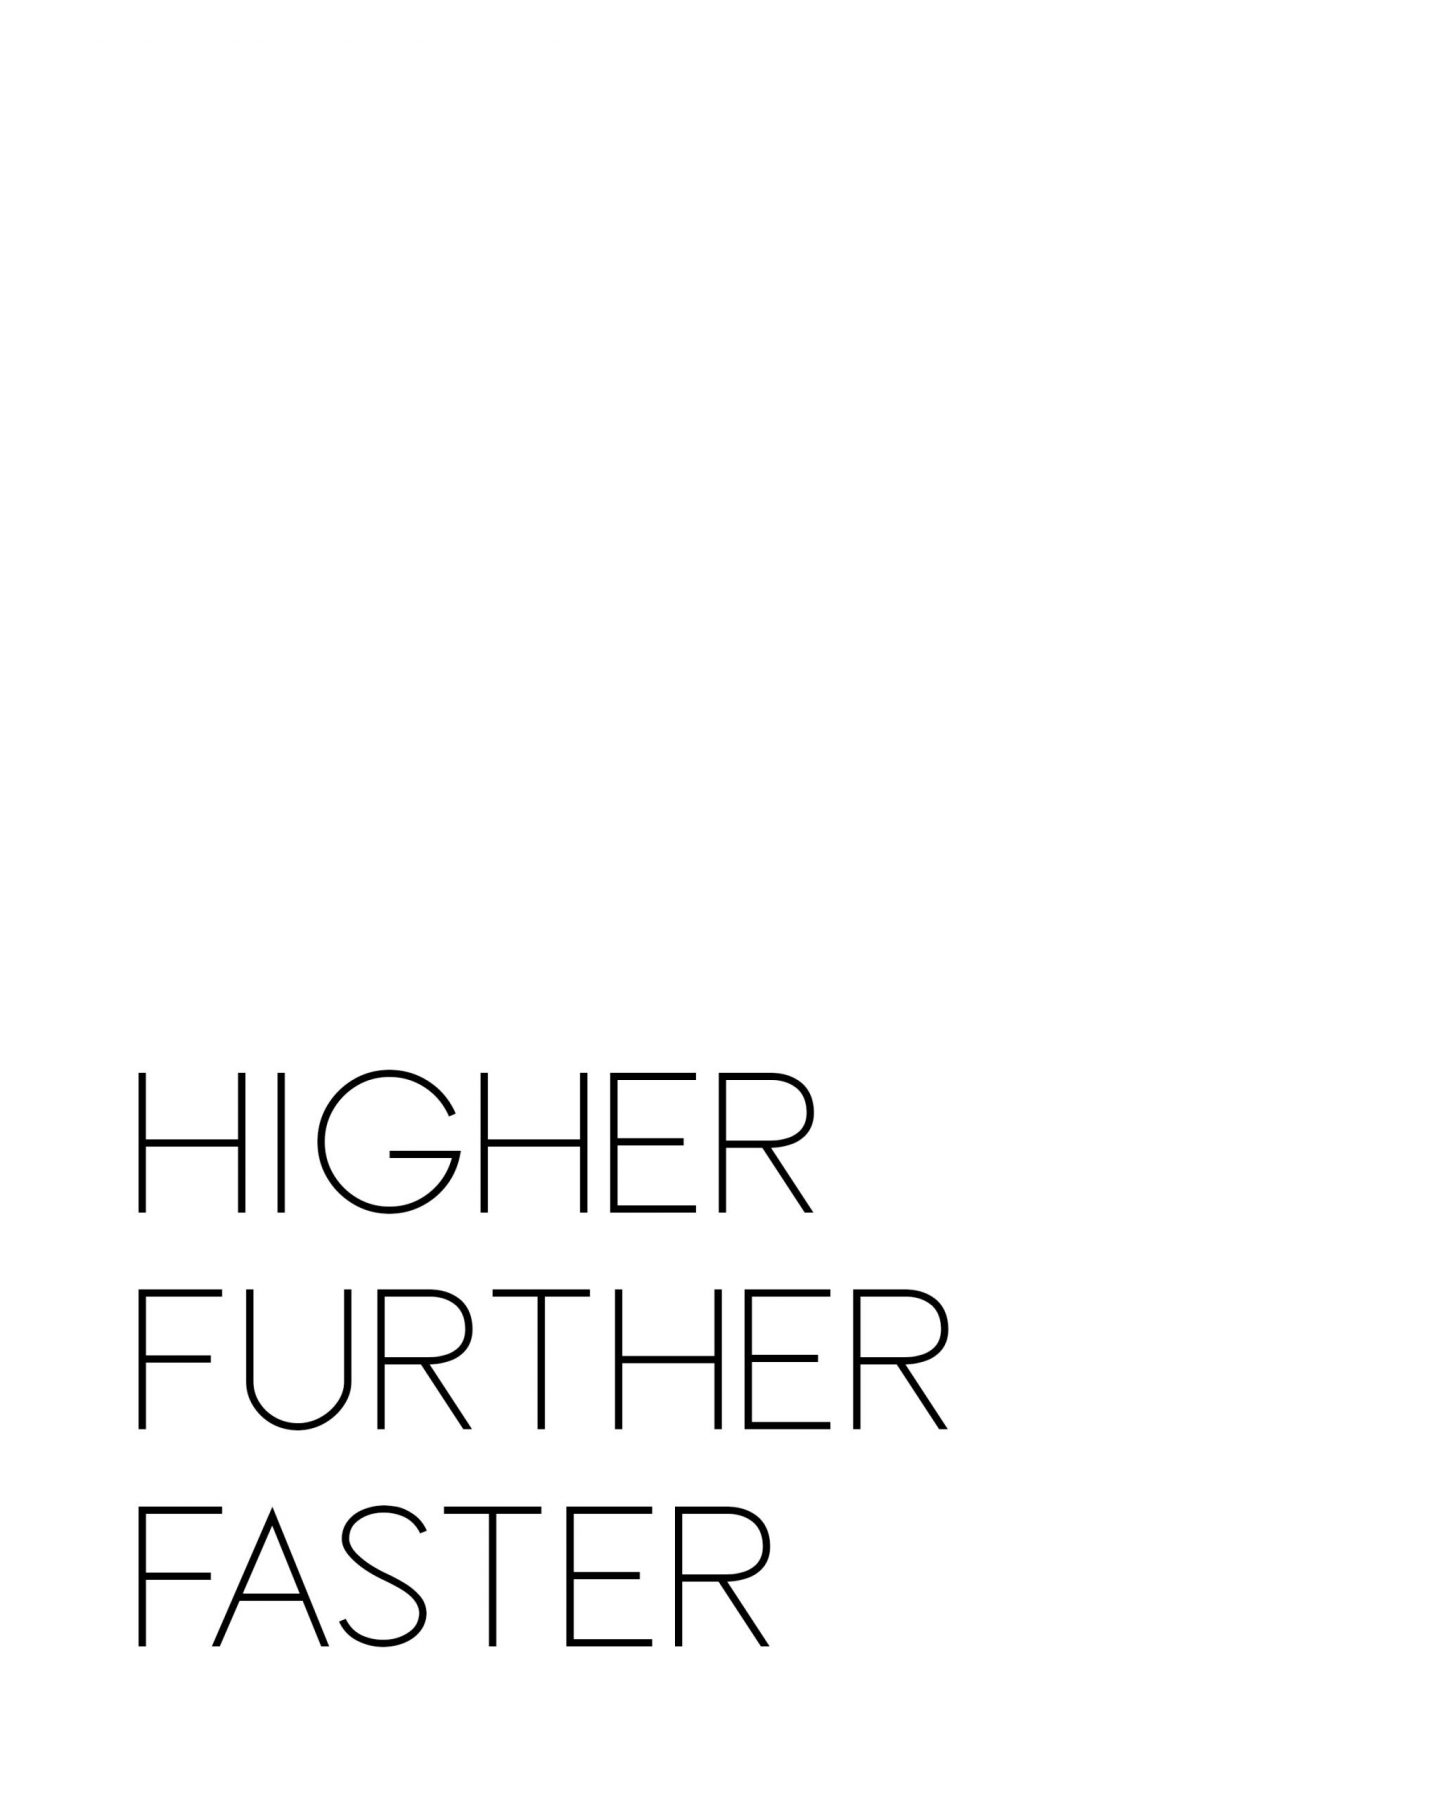 Higher Further Faster Download8x10